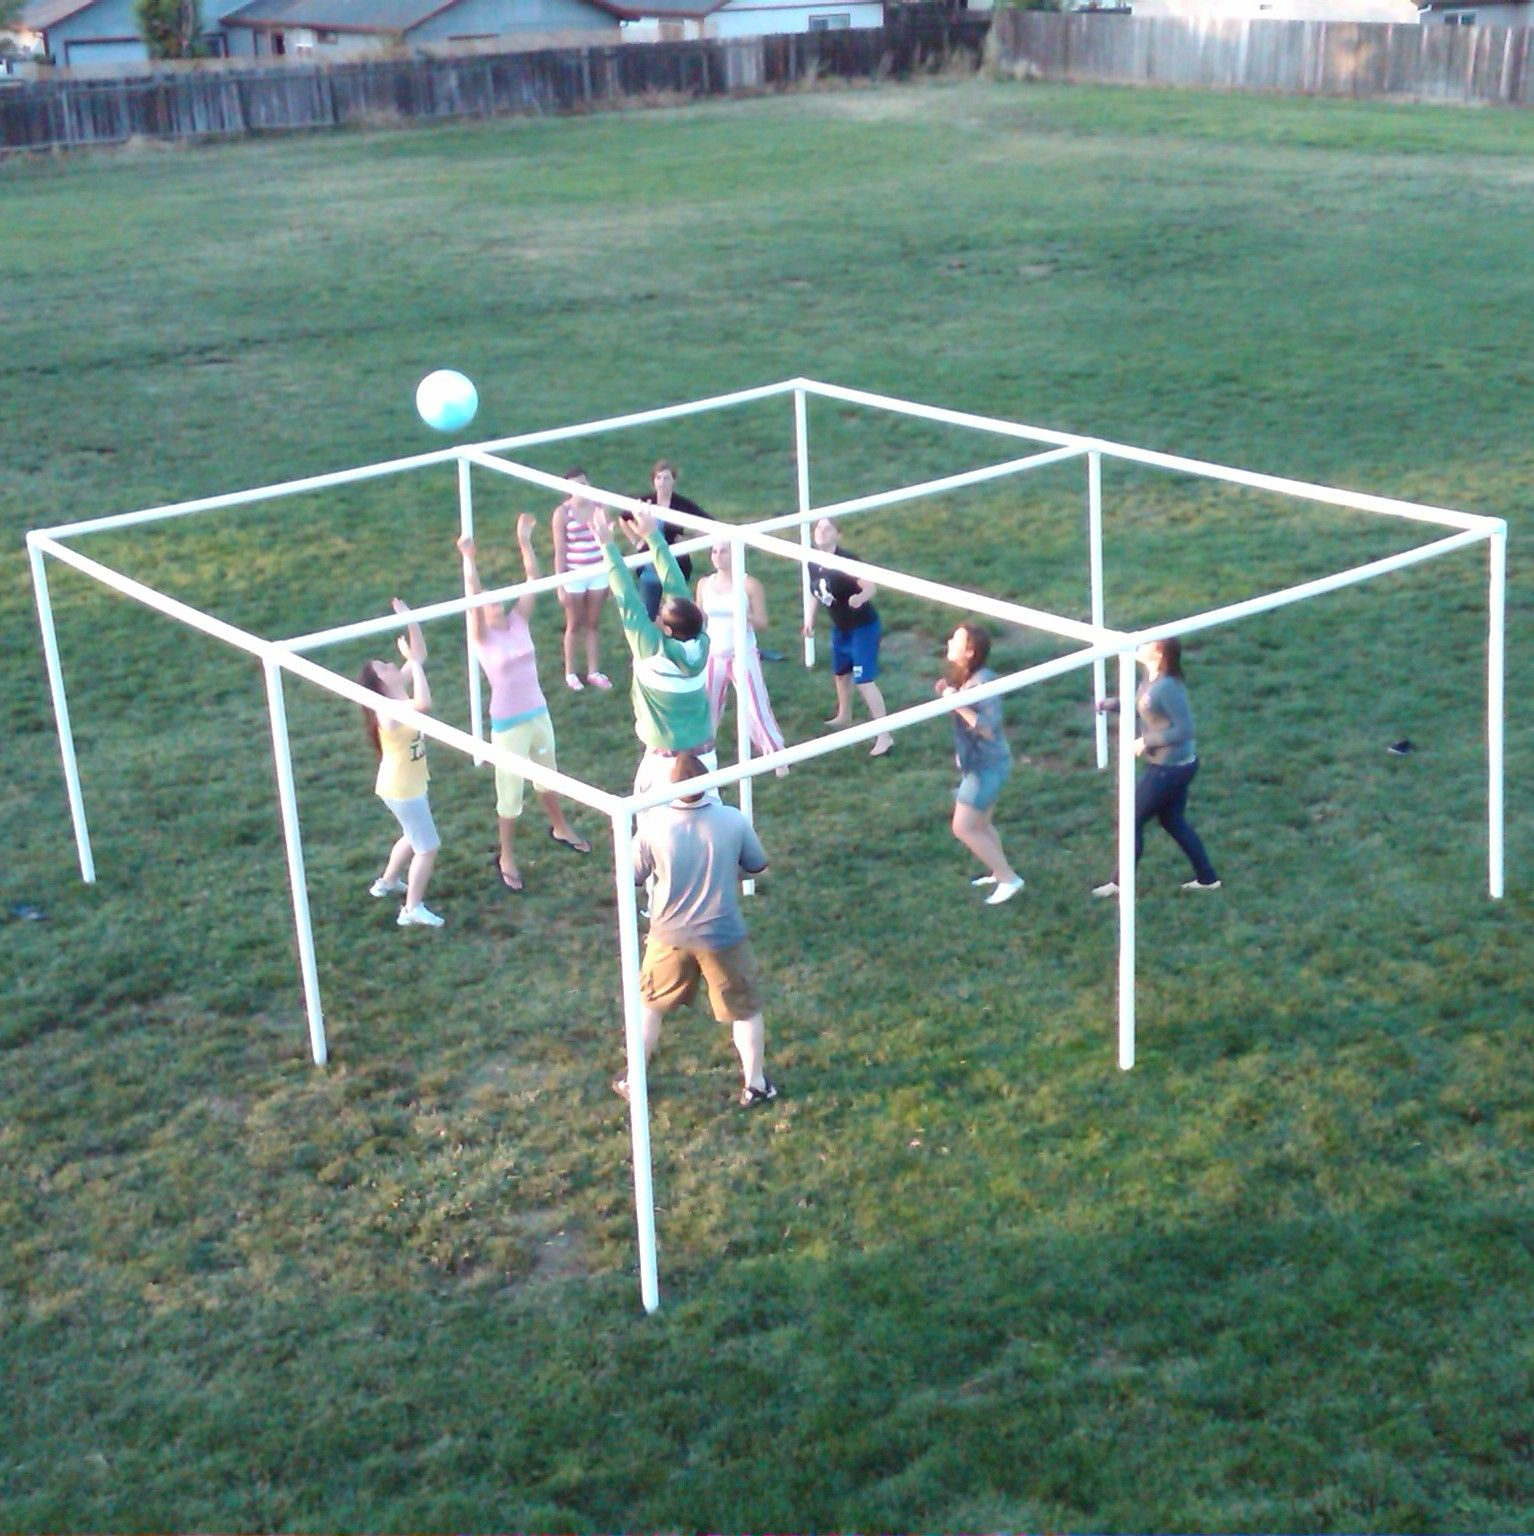 Volley Square With Images Youth Group Games Youth Games Backyard Games